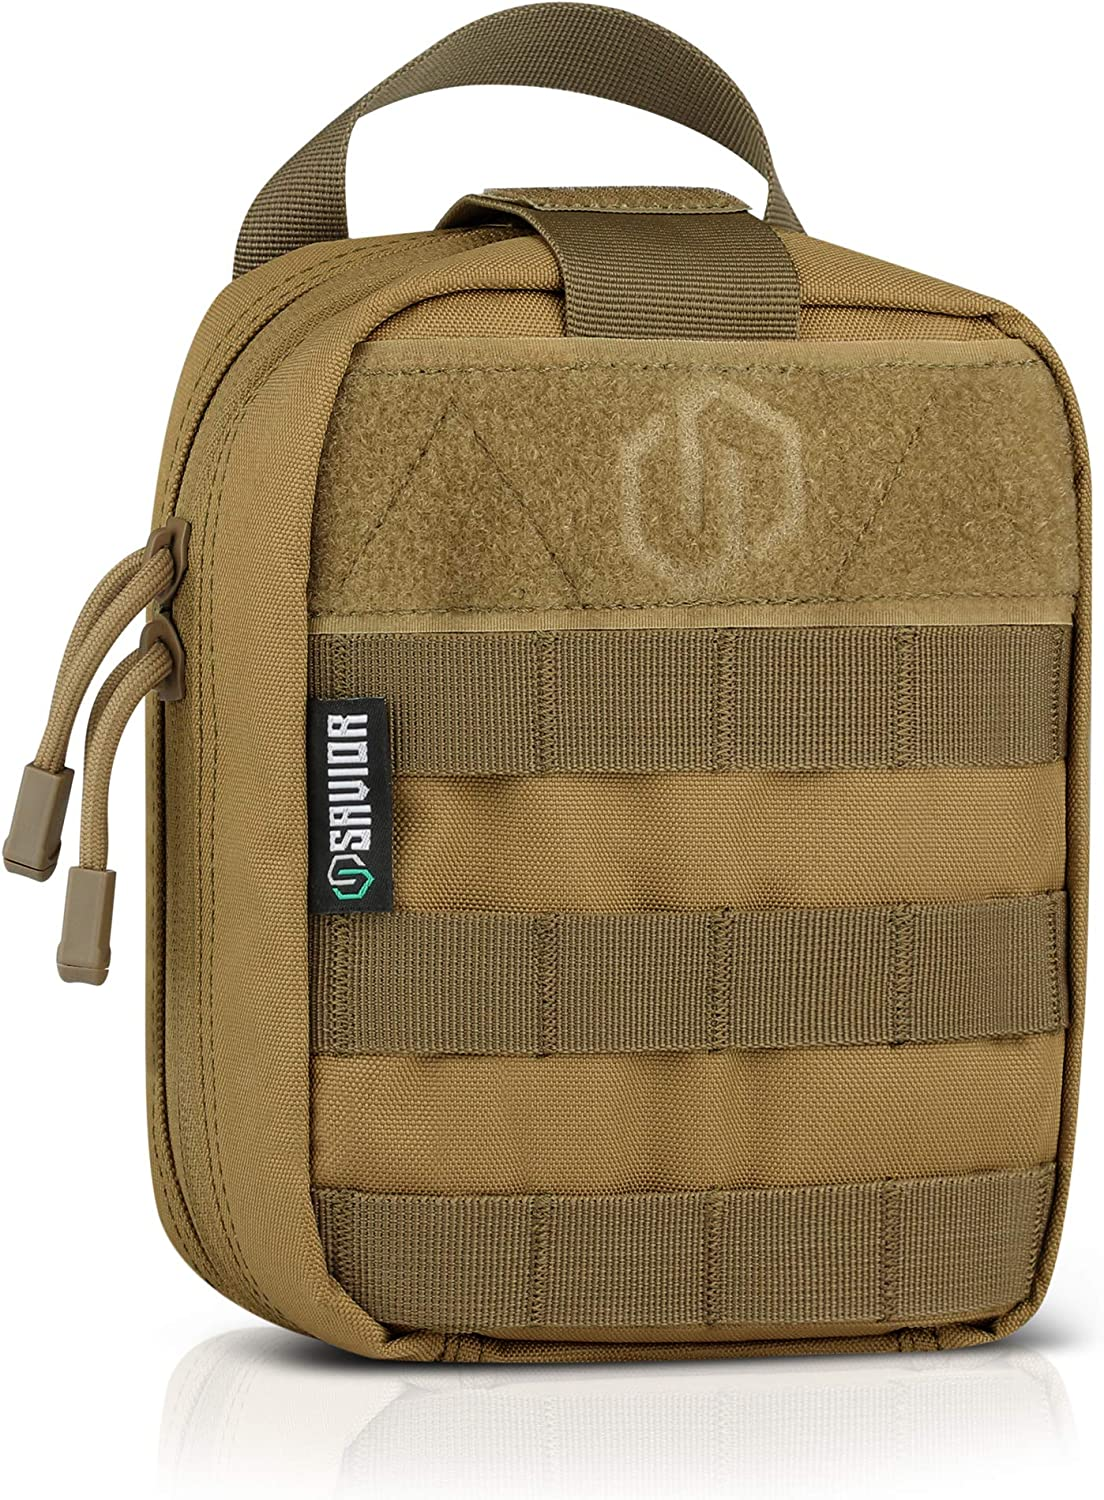 1000D Tactical Compact Molle First Aid IFAK Utility Medical Accessory Bag Pouch